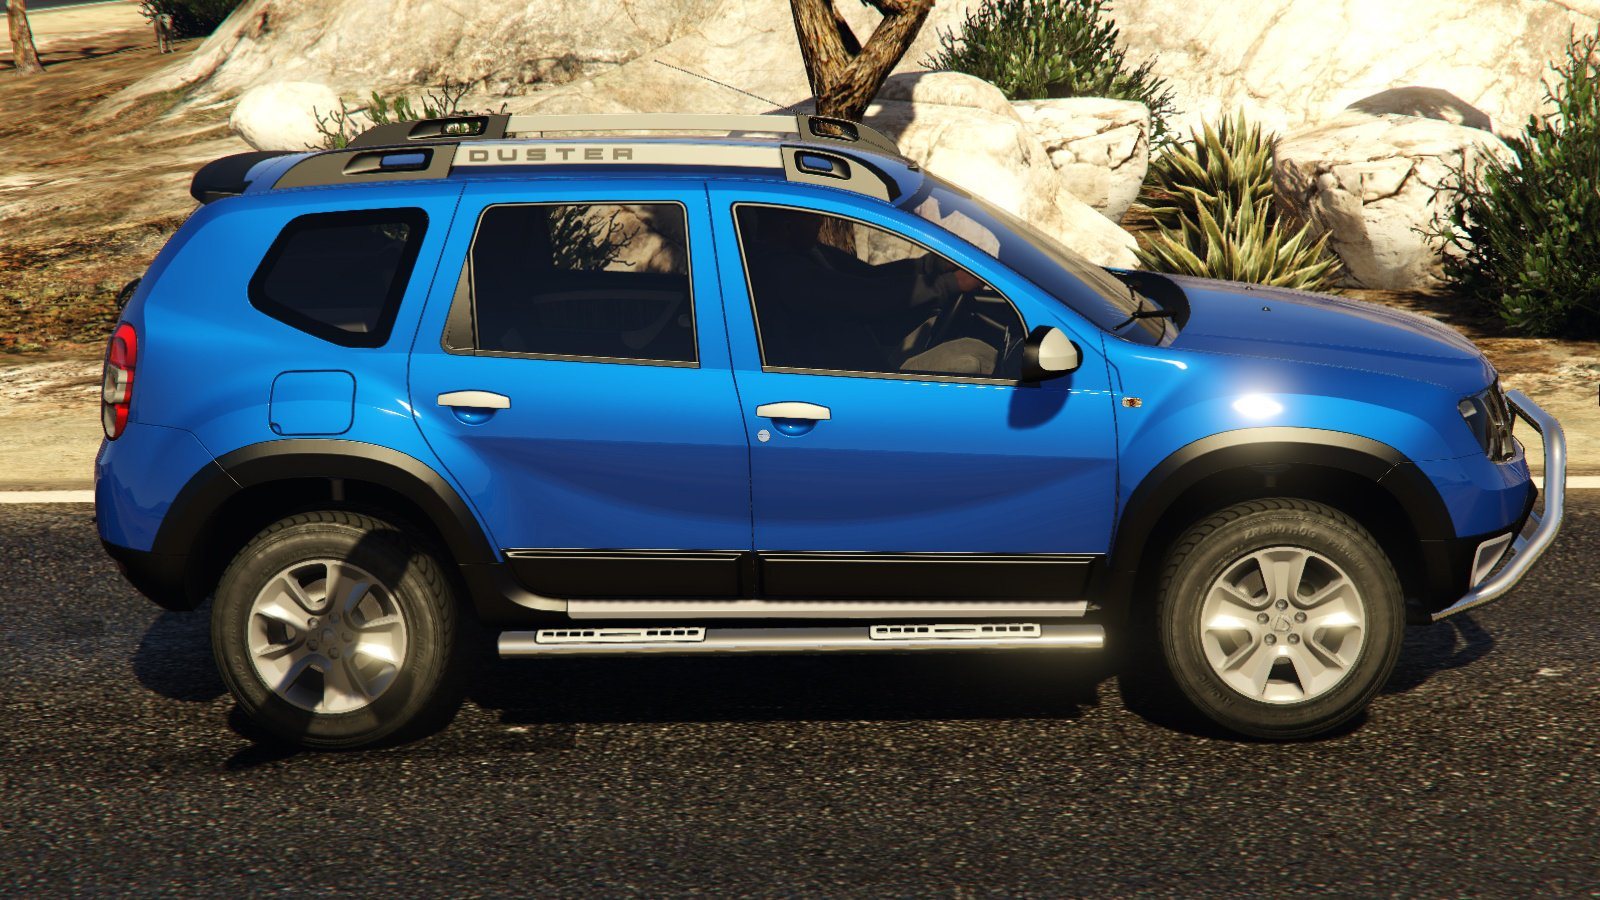 dacia duster 2014 vehicules pour gta v sur gta modding. Black Bedroom Furniture Sets. Home Design Ideas